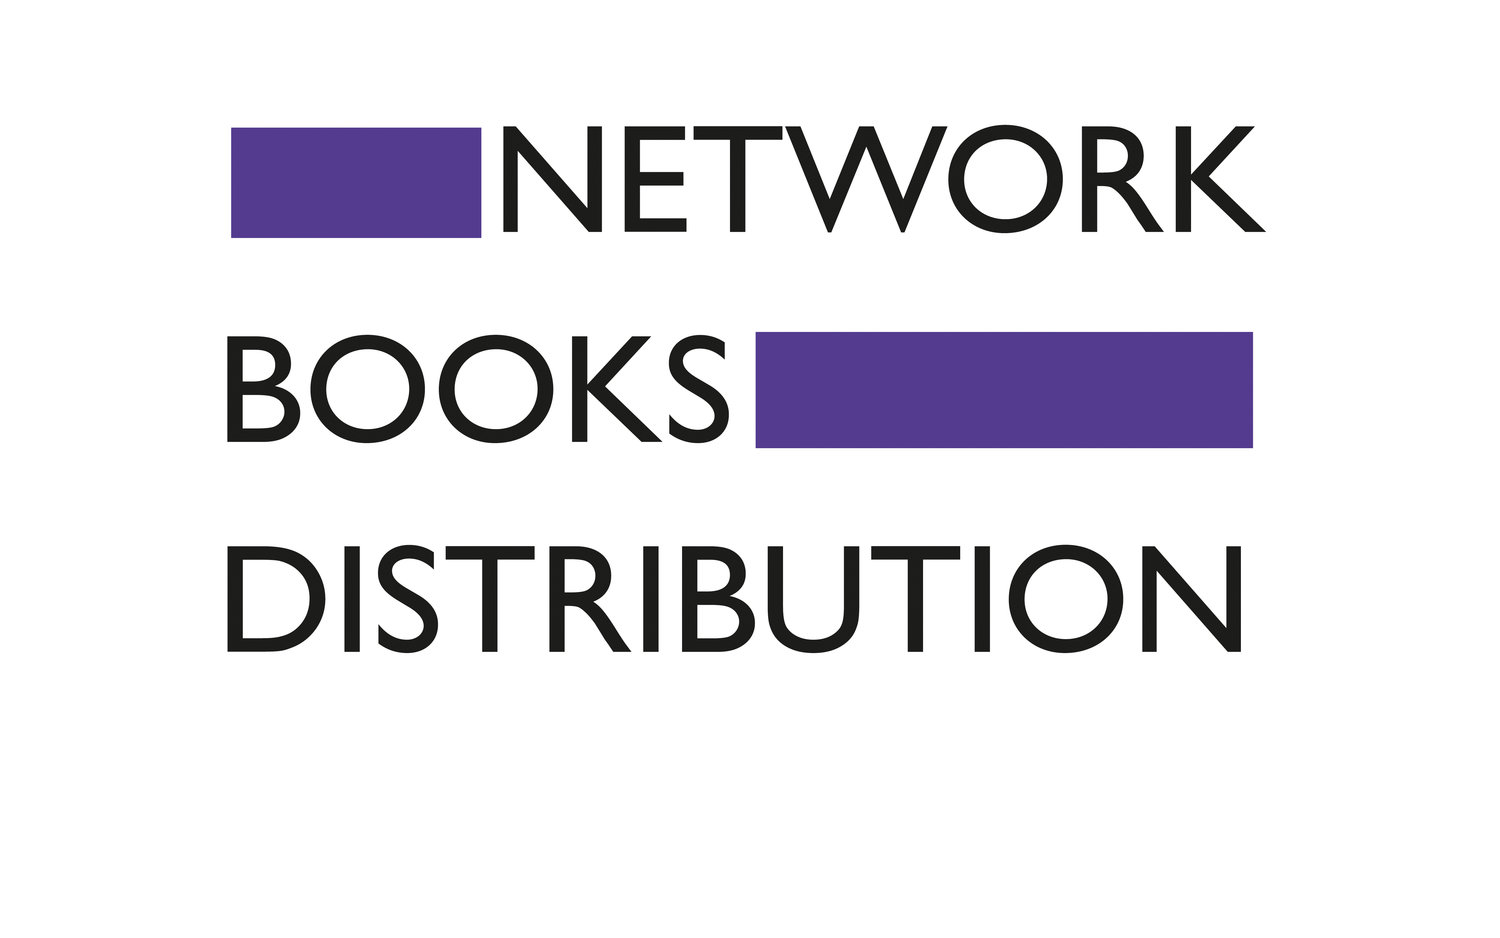 Network Books